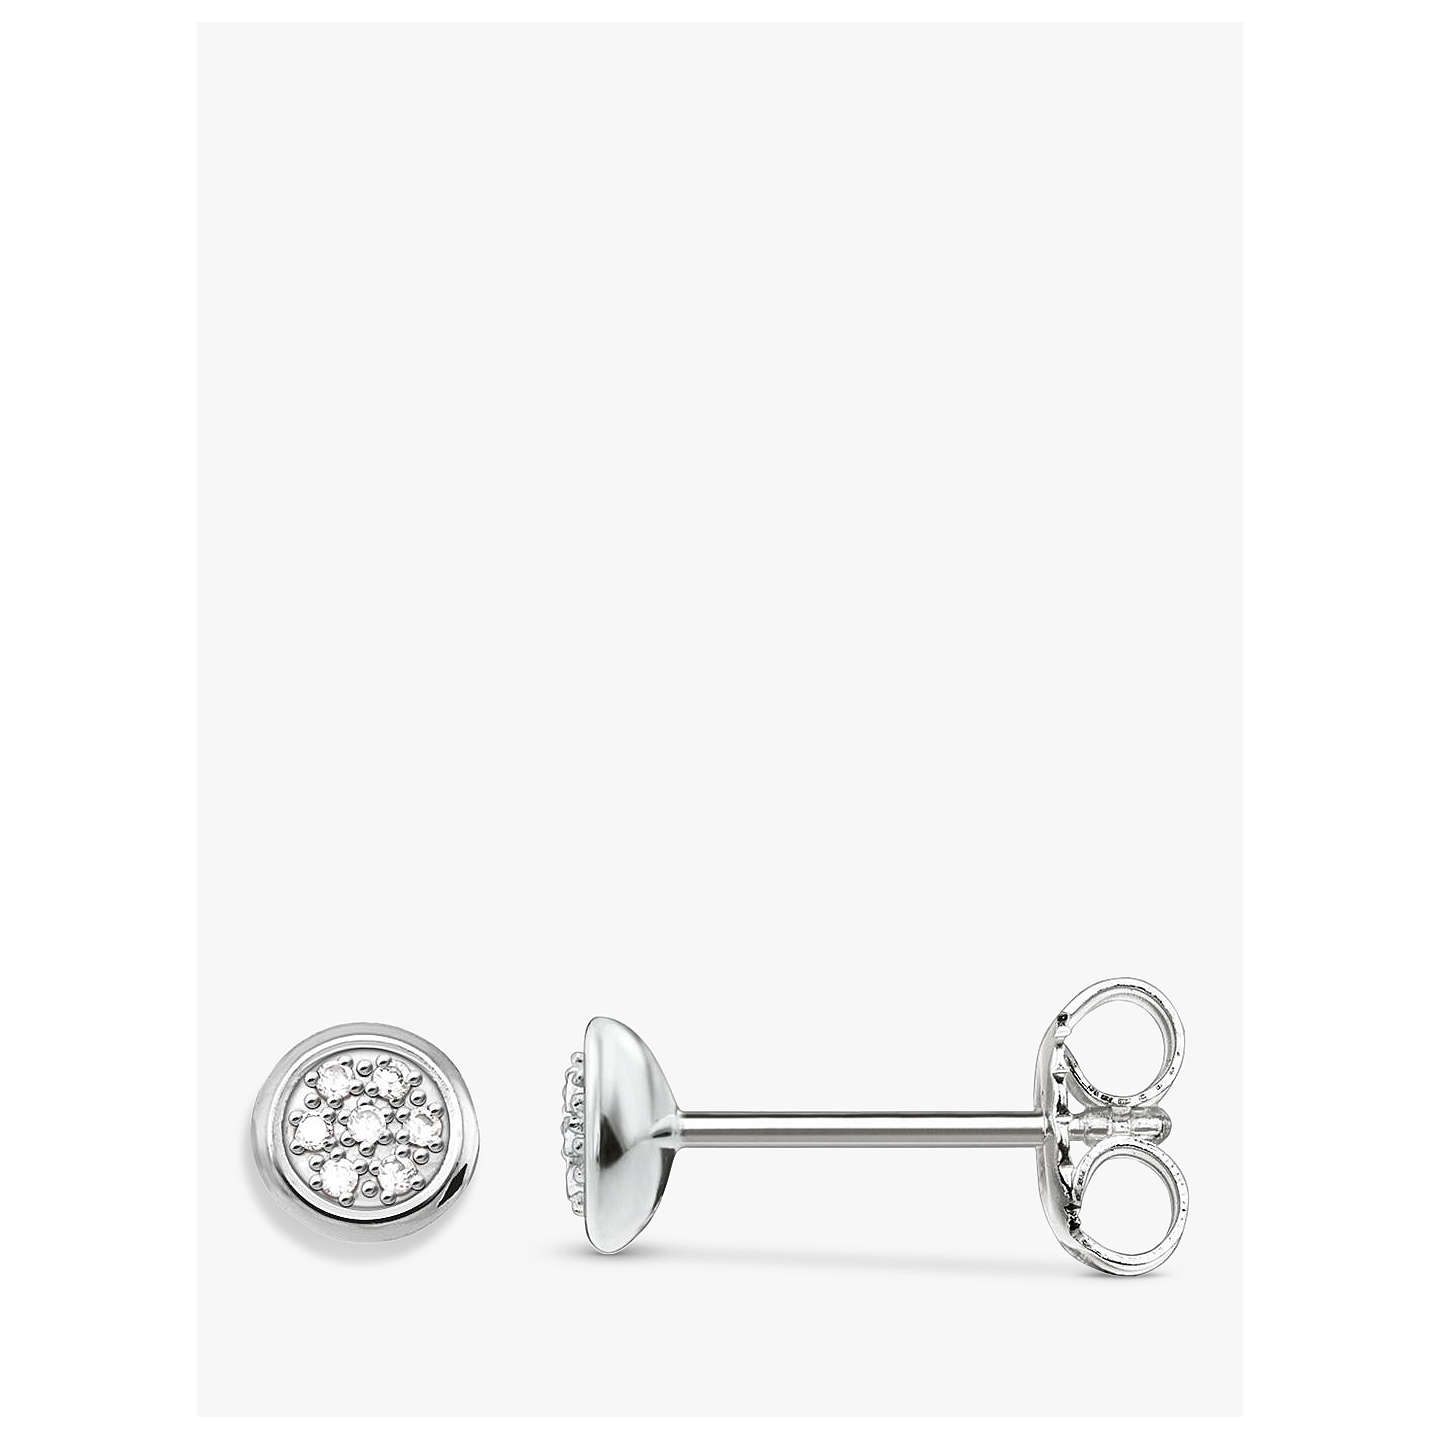 BuyTHOMAS SABO Glam & Soul Diamond Pavé Disc Stud Earrings, Silver Online at johnlewis.com